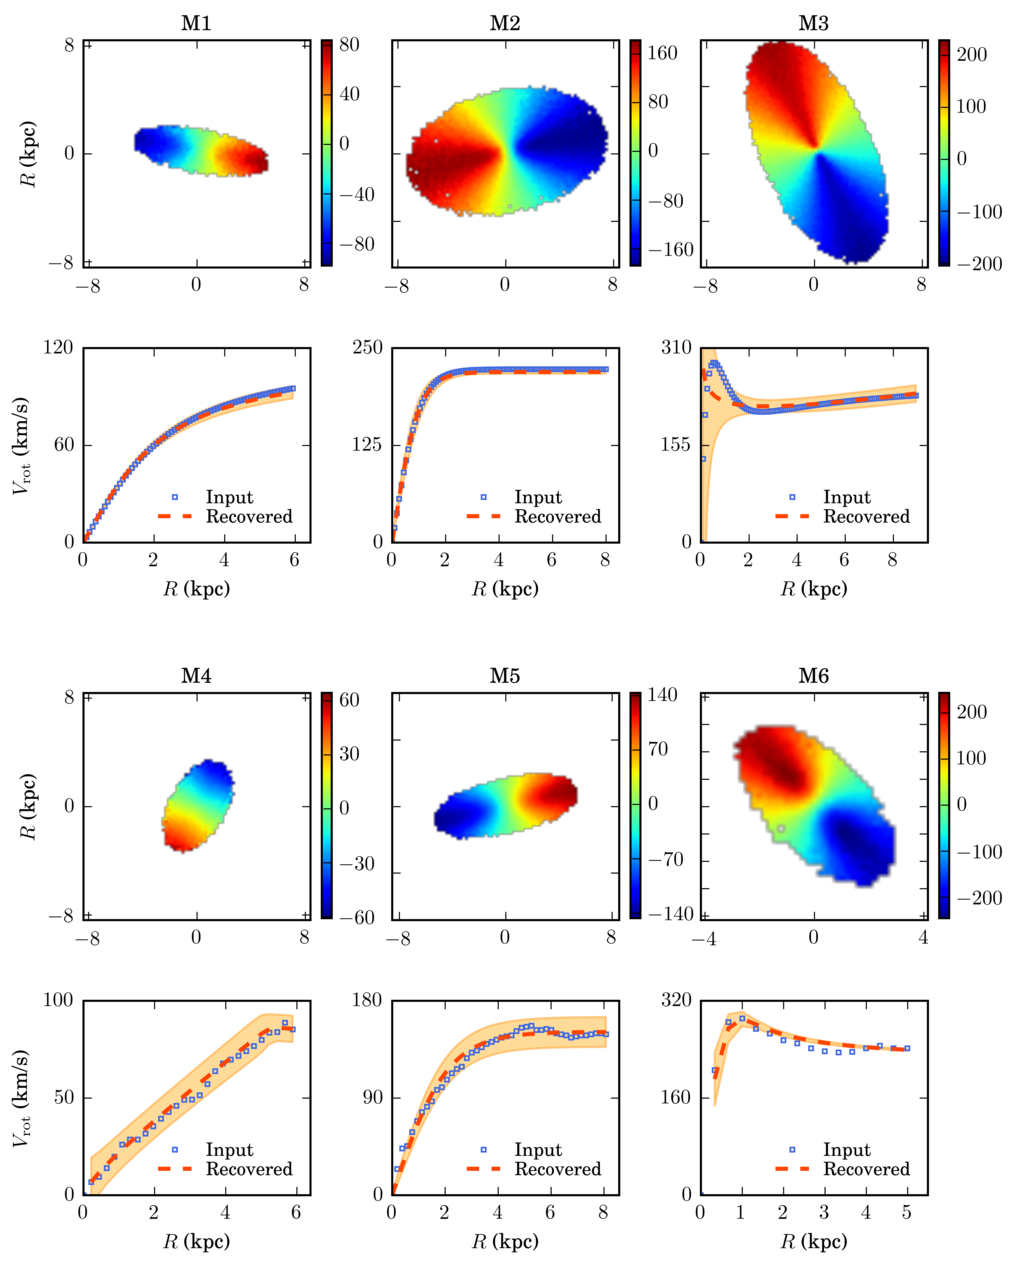 For different mock background galaxies, these plots show the velocity fields (upper panels) and rotation curves (bottom panels). The velocity field is colour coded (see bar on the side) with red areas moving away from the observer and blue areas moving towards the observer. The original rotation curves are shown in blue and the best fit kinematic model is shown in red. The orange band shows the possible errors from uncertainties of the parameters that defined the rotation curves. The mock data M1-M3 have input rotation curves described by functional forms, while for M4-M6 the rotation curves were taken from real galaxies. The rotation curves of M1 and M4 are typical of dwarf galaxies, the rotation curves of M2 and M5 are prototypes of spirals, while those of M3 and M6 are typical of massive spirals with a prominent bulge.